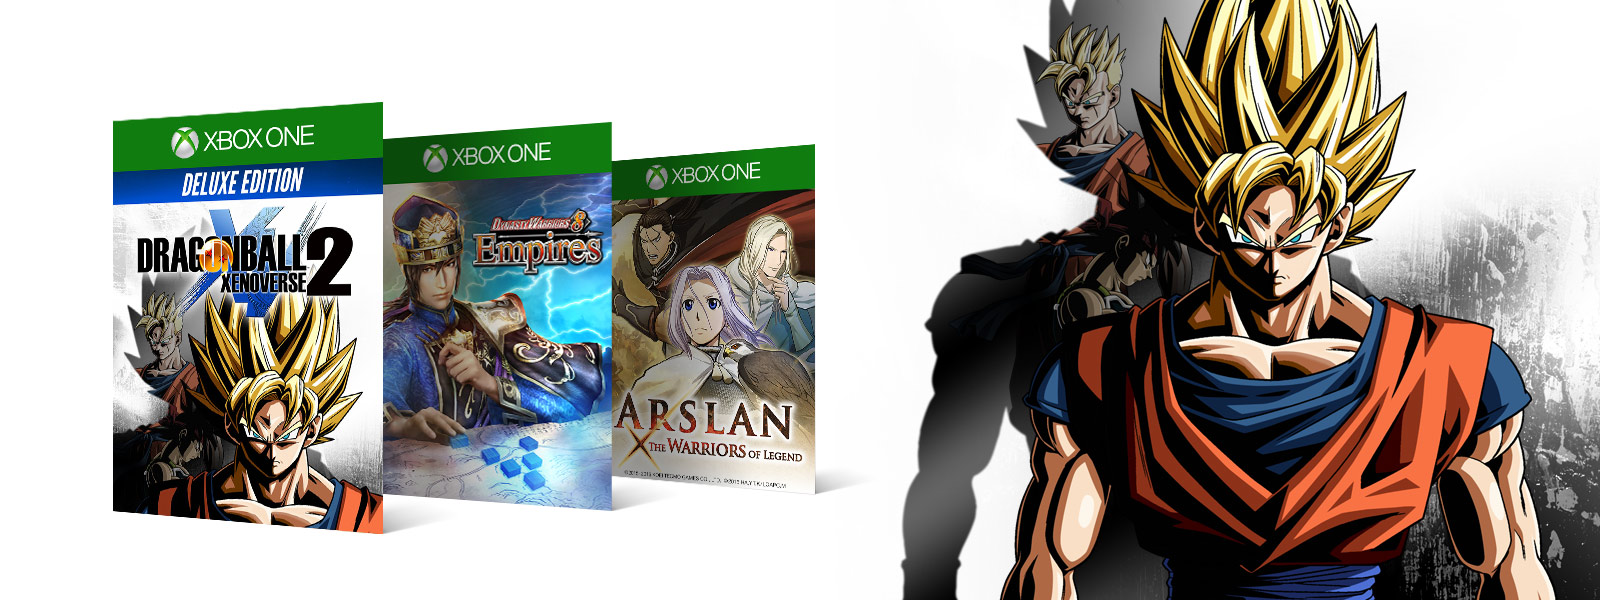 Dragonball Z graphics next to Dragonball xenoverse 2 Dynasty Warriors 6 Arslan boxshots